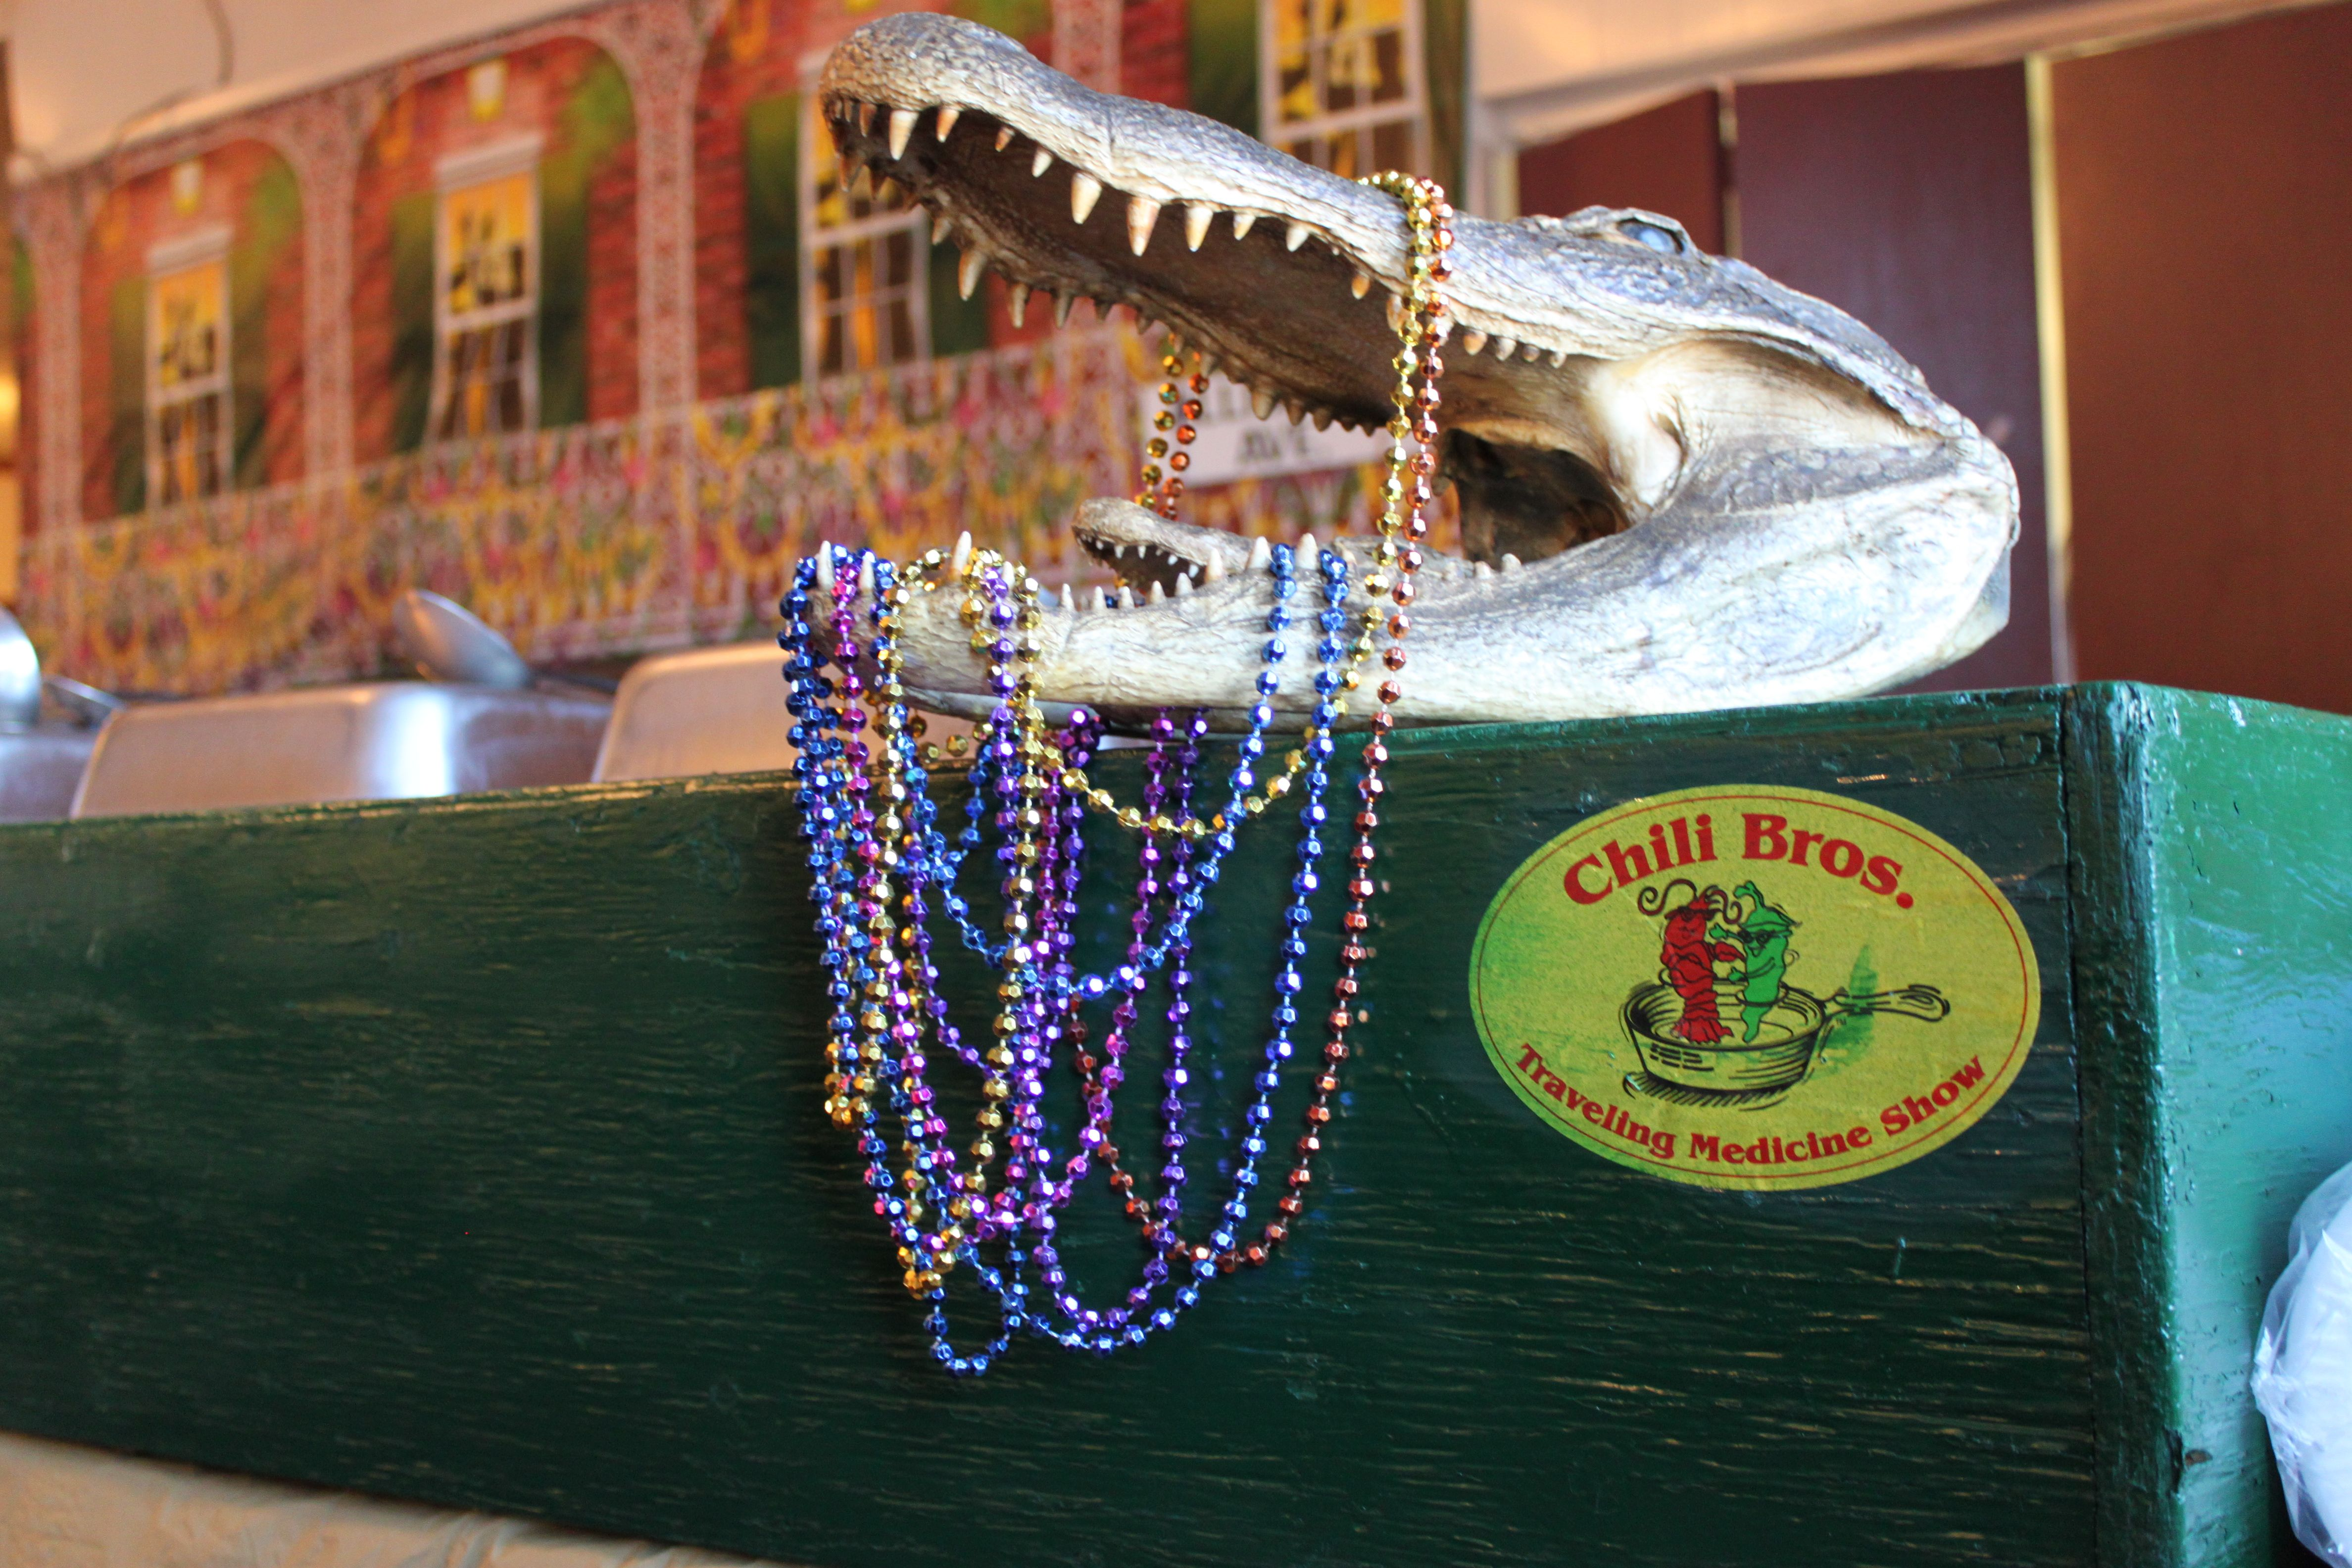 Head down Alligator Ave... (With images) | Special events, Alligator, Bros